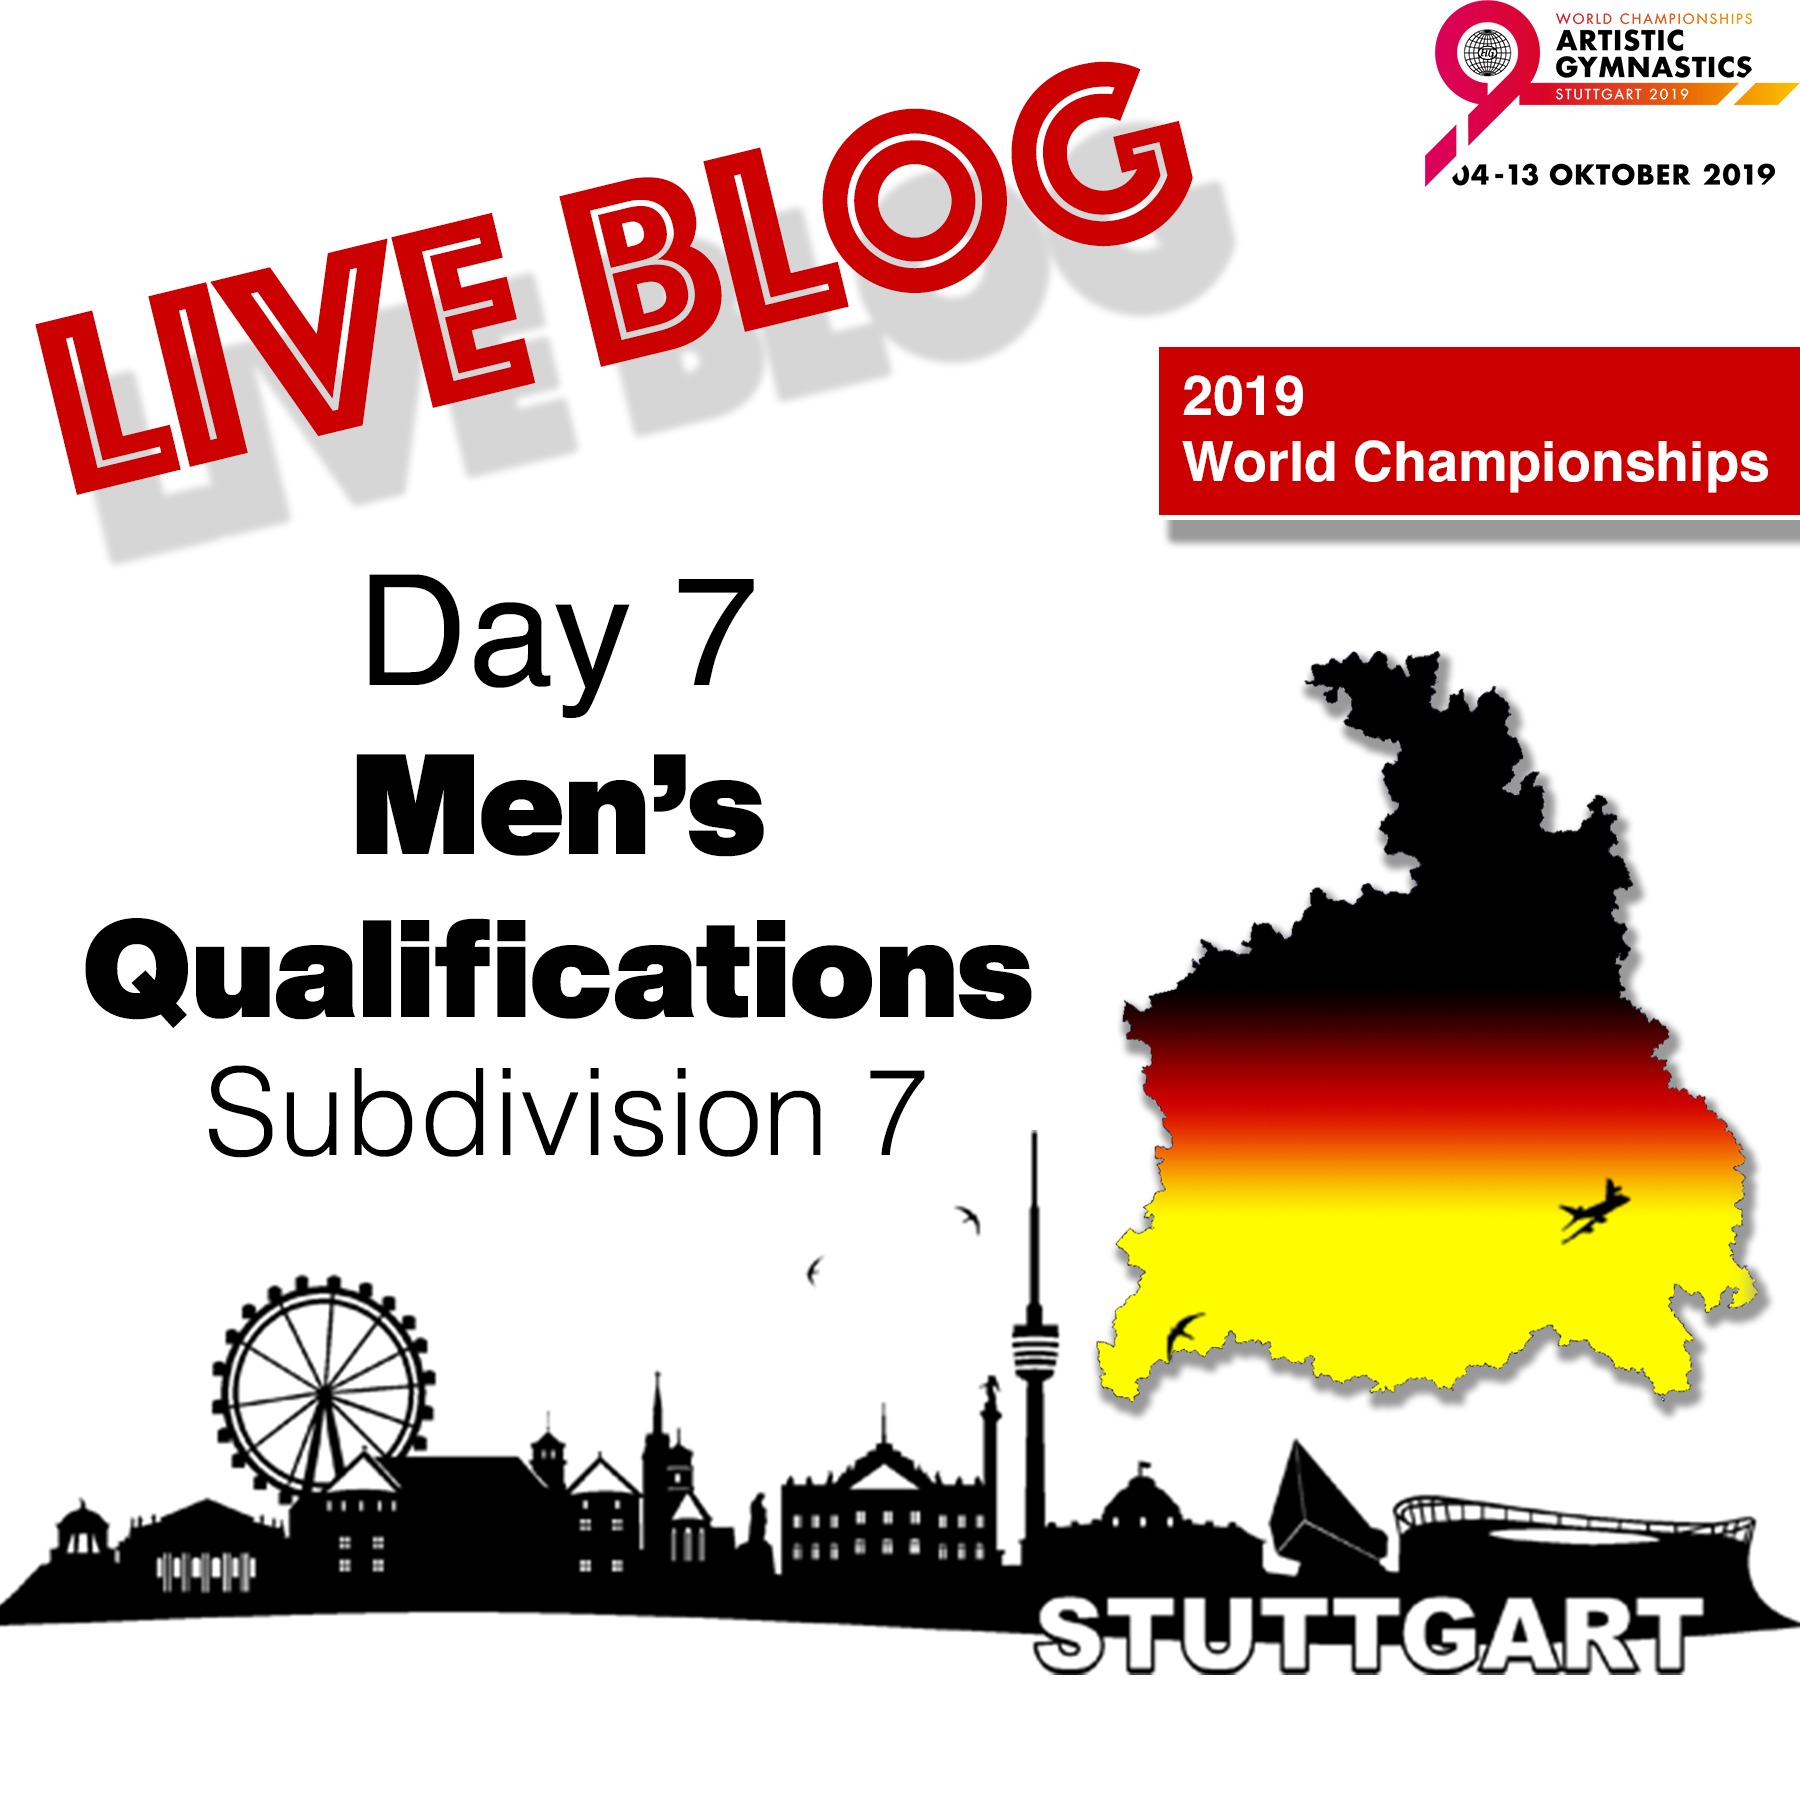 Live Blog: 2019 World Championships – MAG Qualifications – Sub Division 7, Oct. 7th